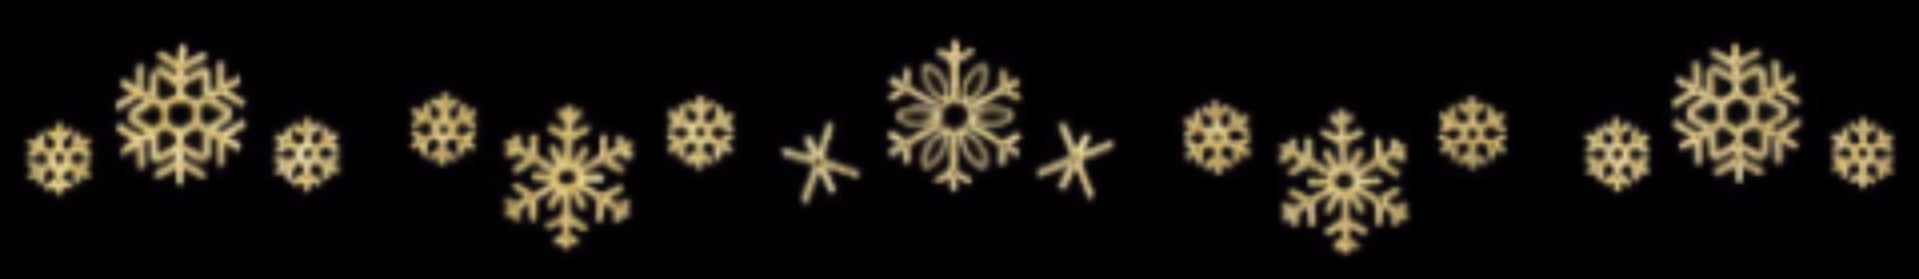 40ft Snowflake Skyline Decoration - Warm White,Aluminum LED, Commercial Grade LED Lights